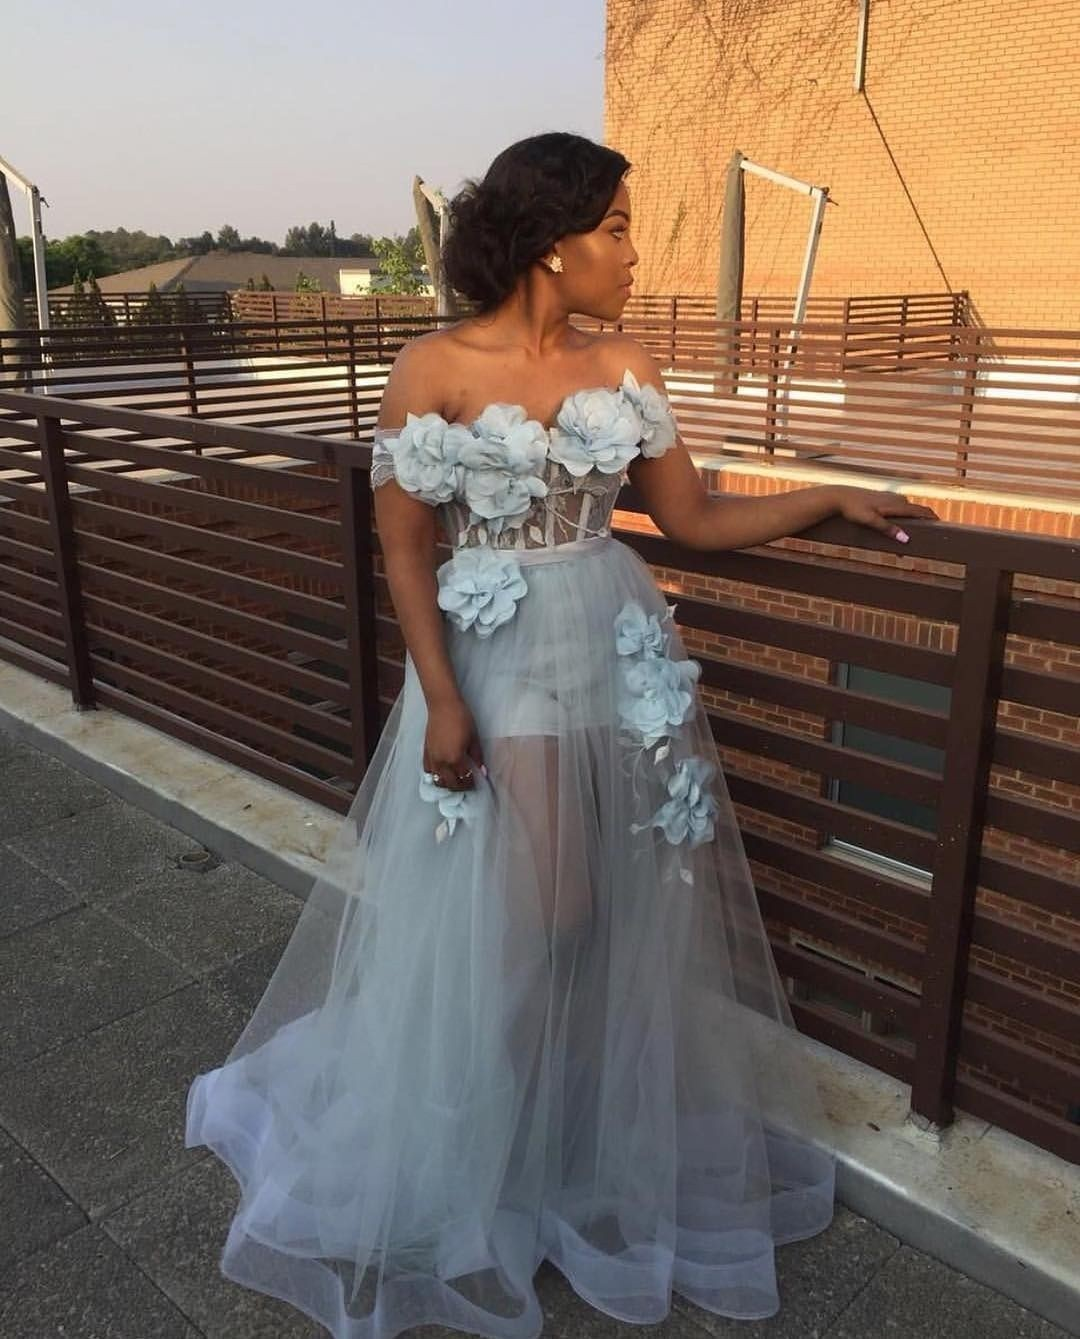 Black Girls Prom Outfits, Wedding dress, Cocktail dress